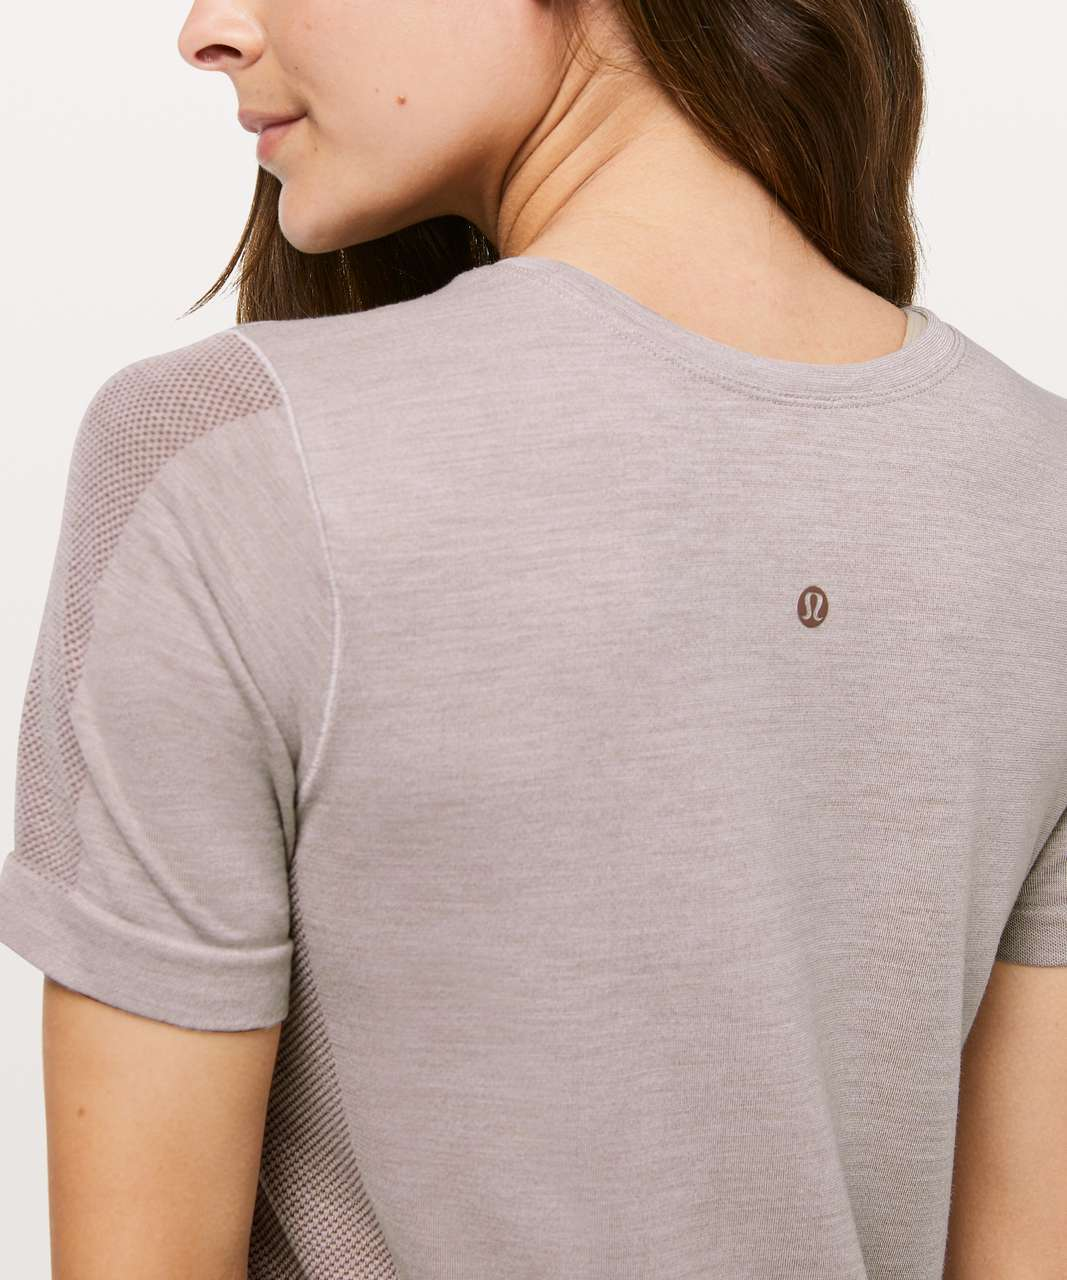 Lululemon Aerial Silk Relaxed Tee - Spanish Oak / White